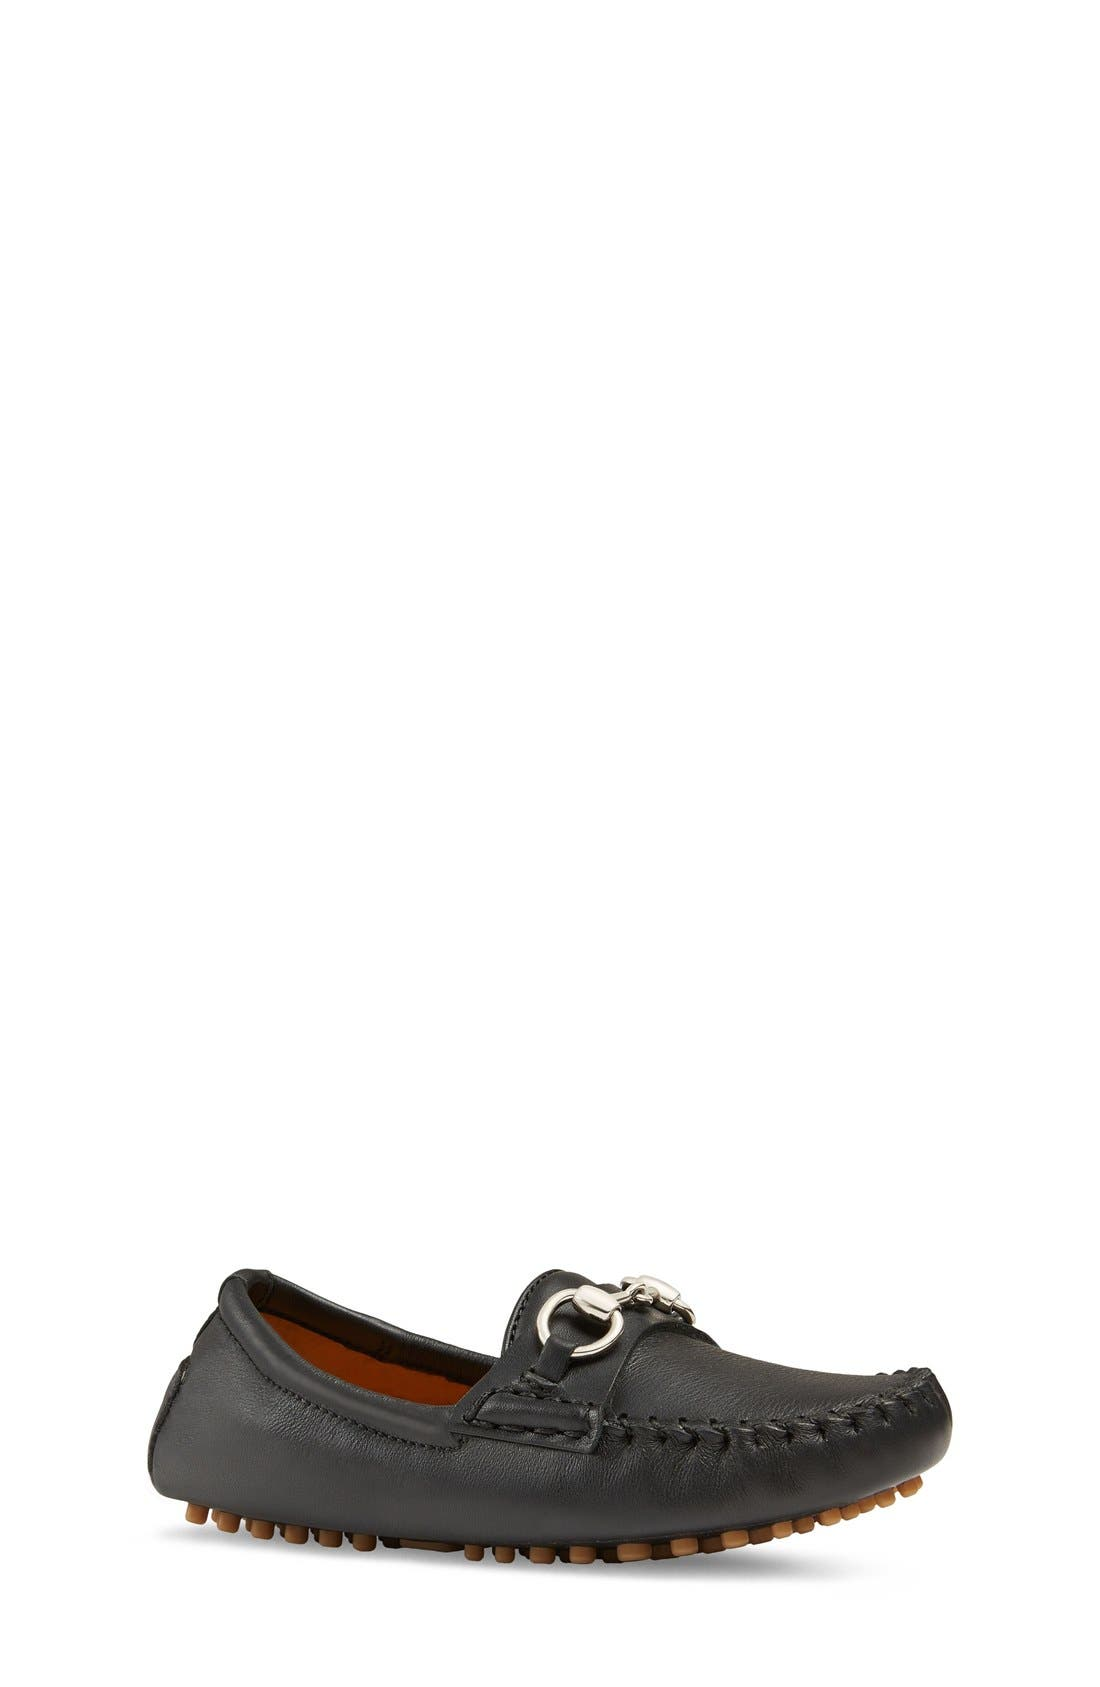 GUCCI 'Road' Loafer